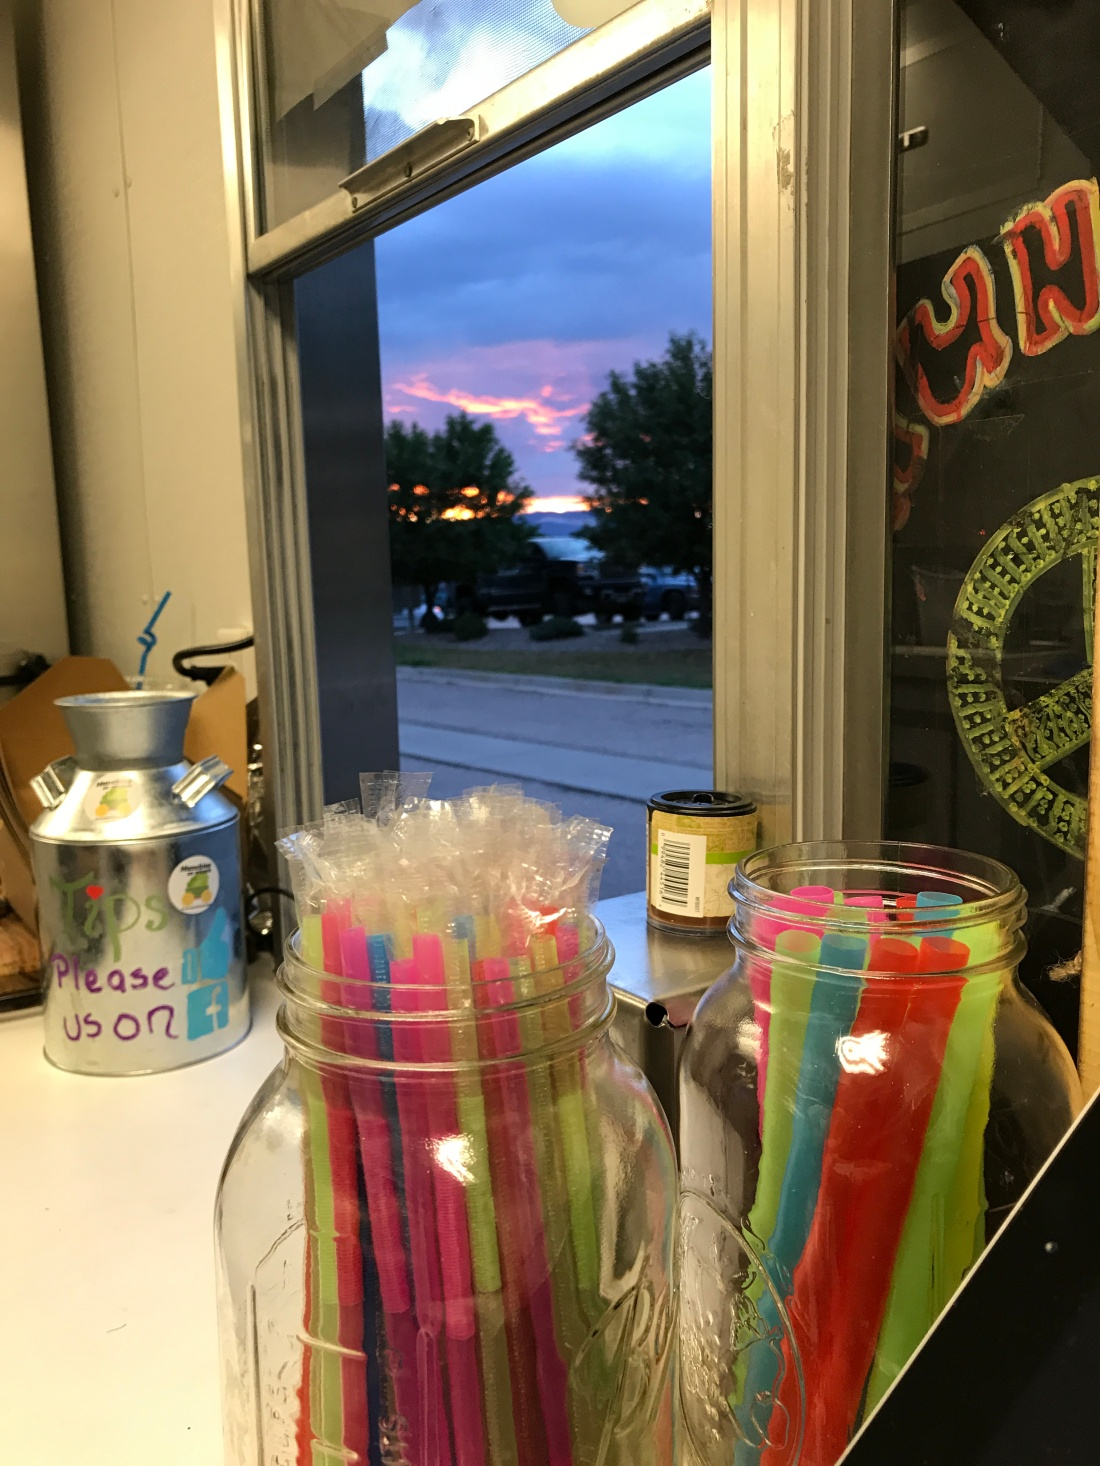 A view through the window of the food trailer shows the Colorado sky at sunset.